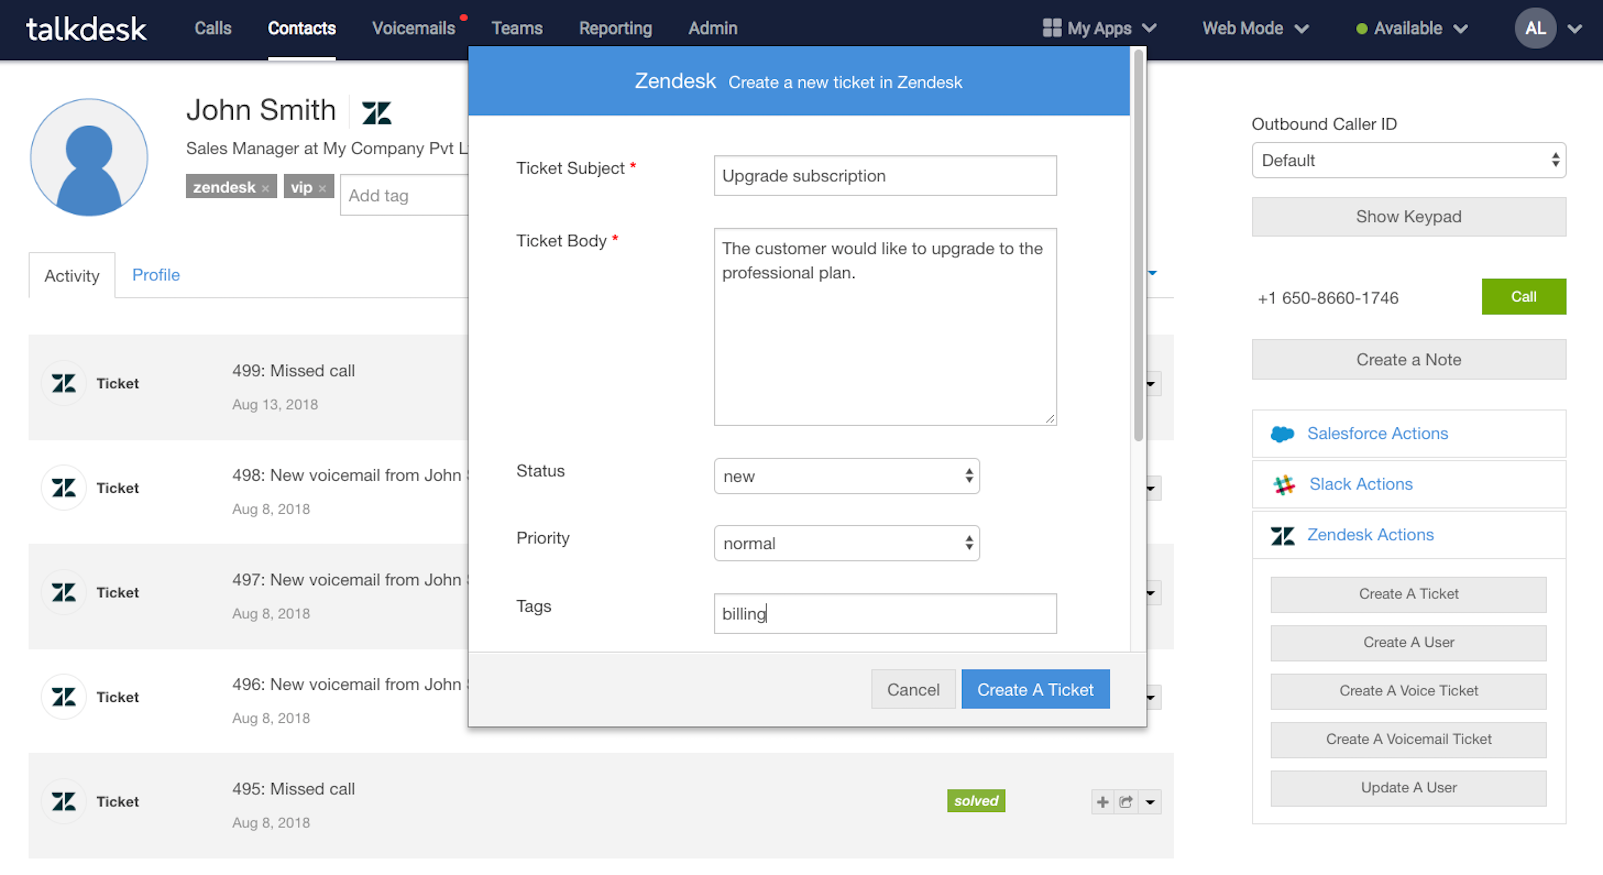 Using_Talkdesk_for_Zendesk_5.png